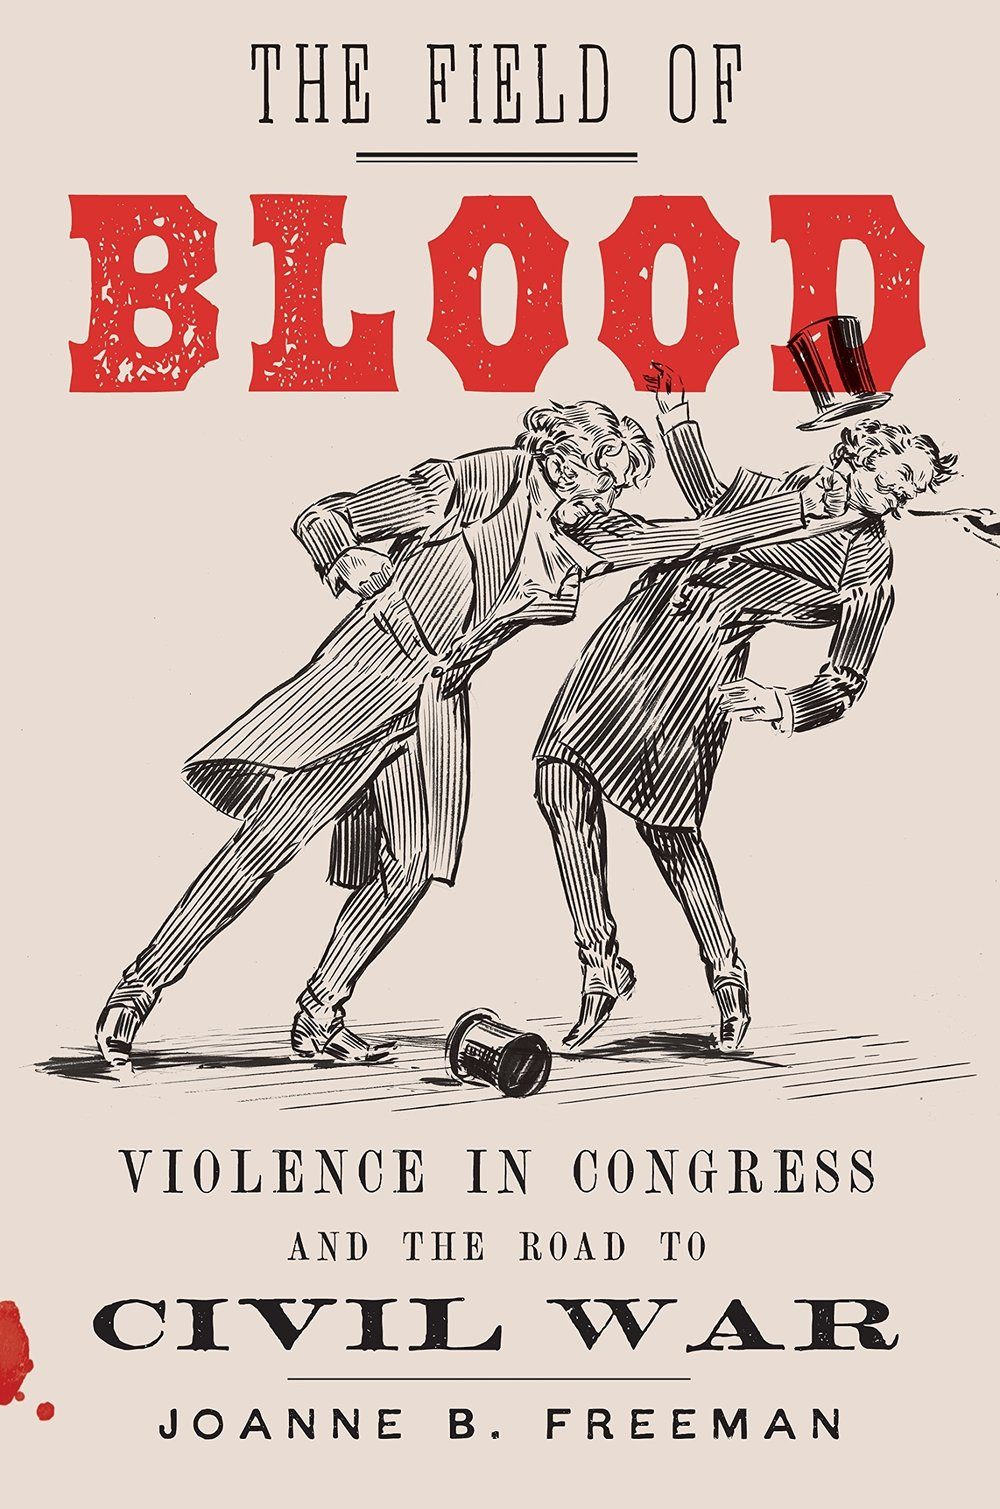 "The Field of Blood - NOW AVAILABLEThe previously untold story of the violence that helped spark the Civil War""With narrative flair and scholarly gravitas, Joanne Freeman has given us a powerful and original account of a ferociously divided America. ... She shows us that the battles of the Civil War began not at Fort Sumter but in the U.S. Capitol...""— Jon Meacham, Pulitzer Prize-winning author of The American Lion"